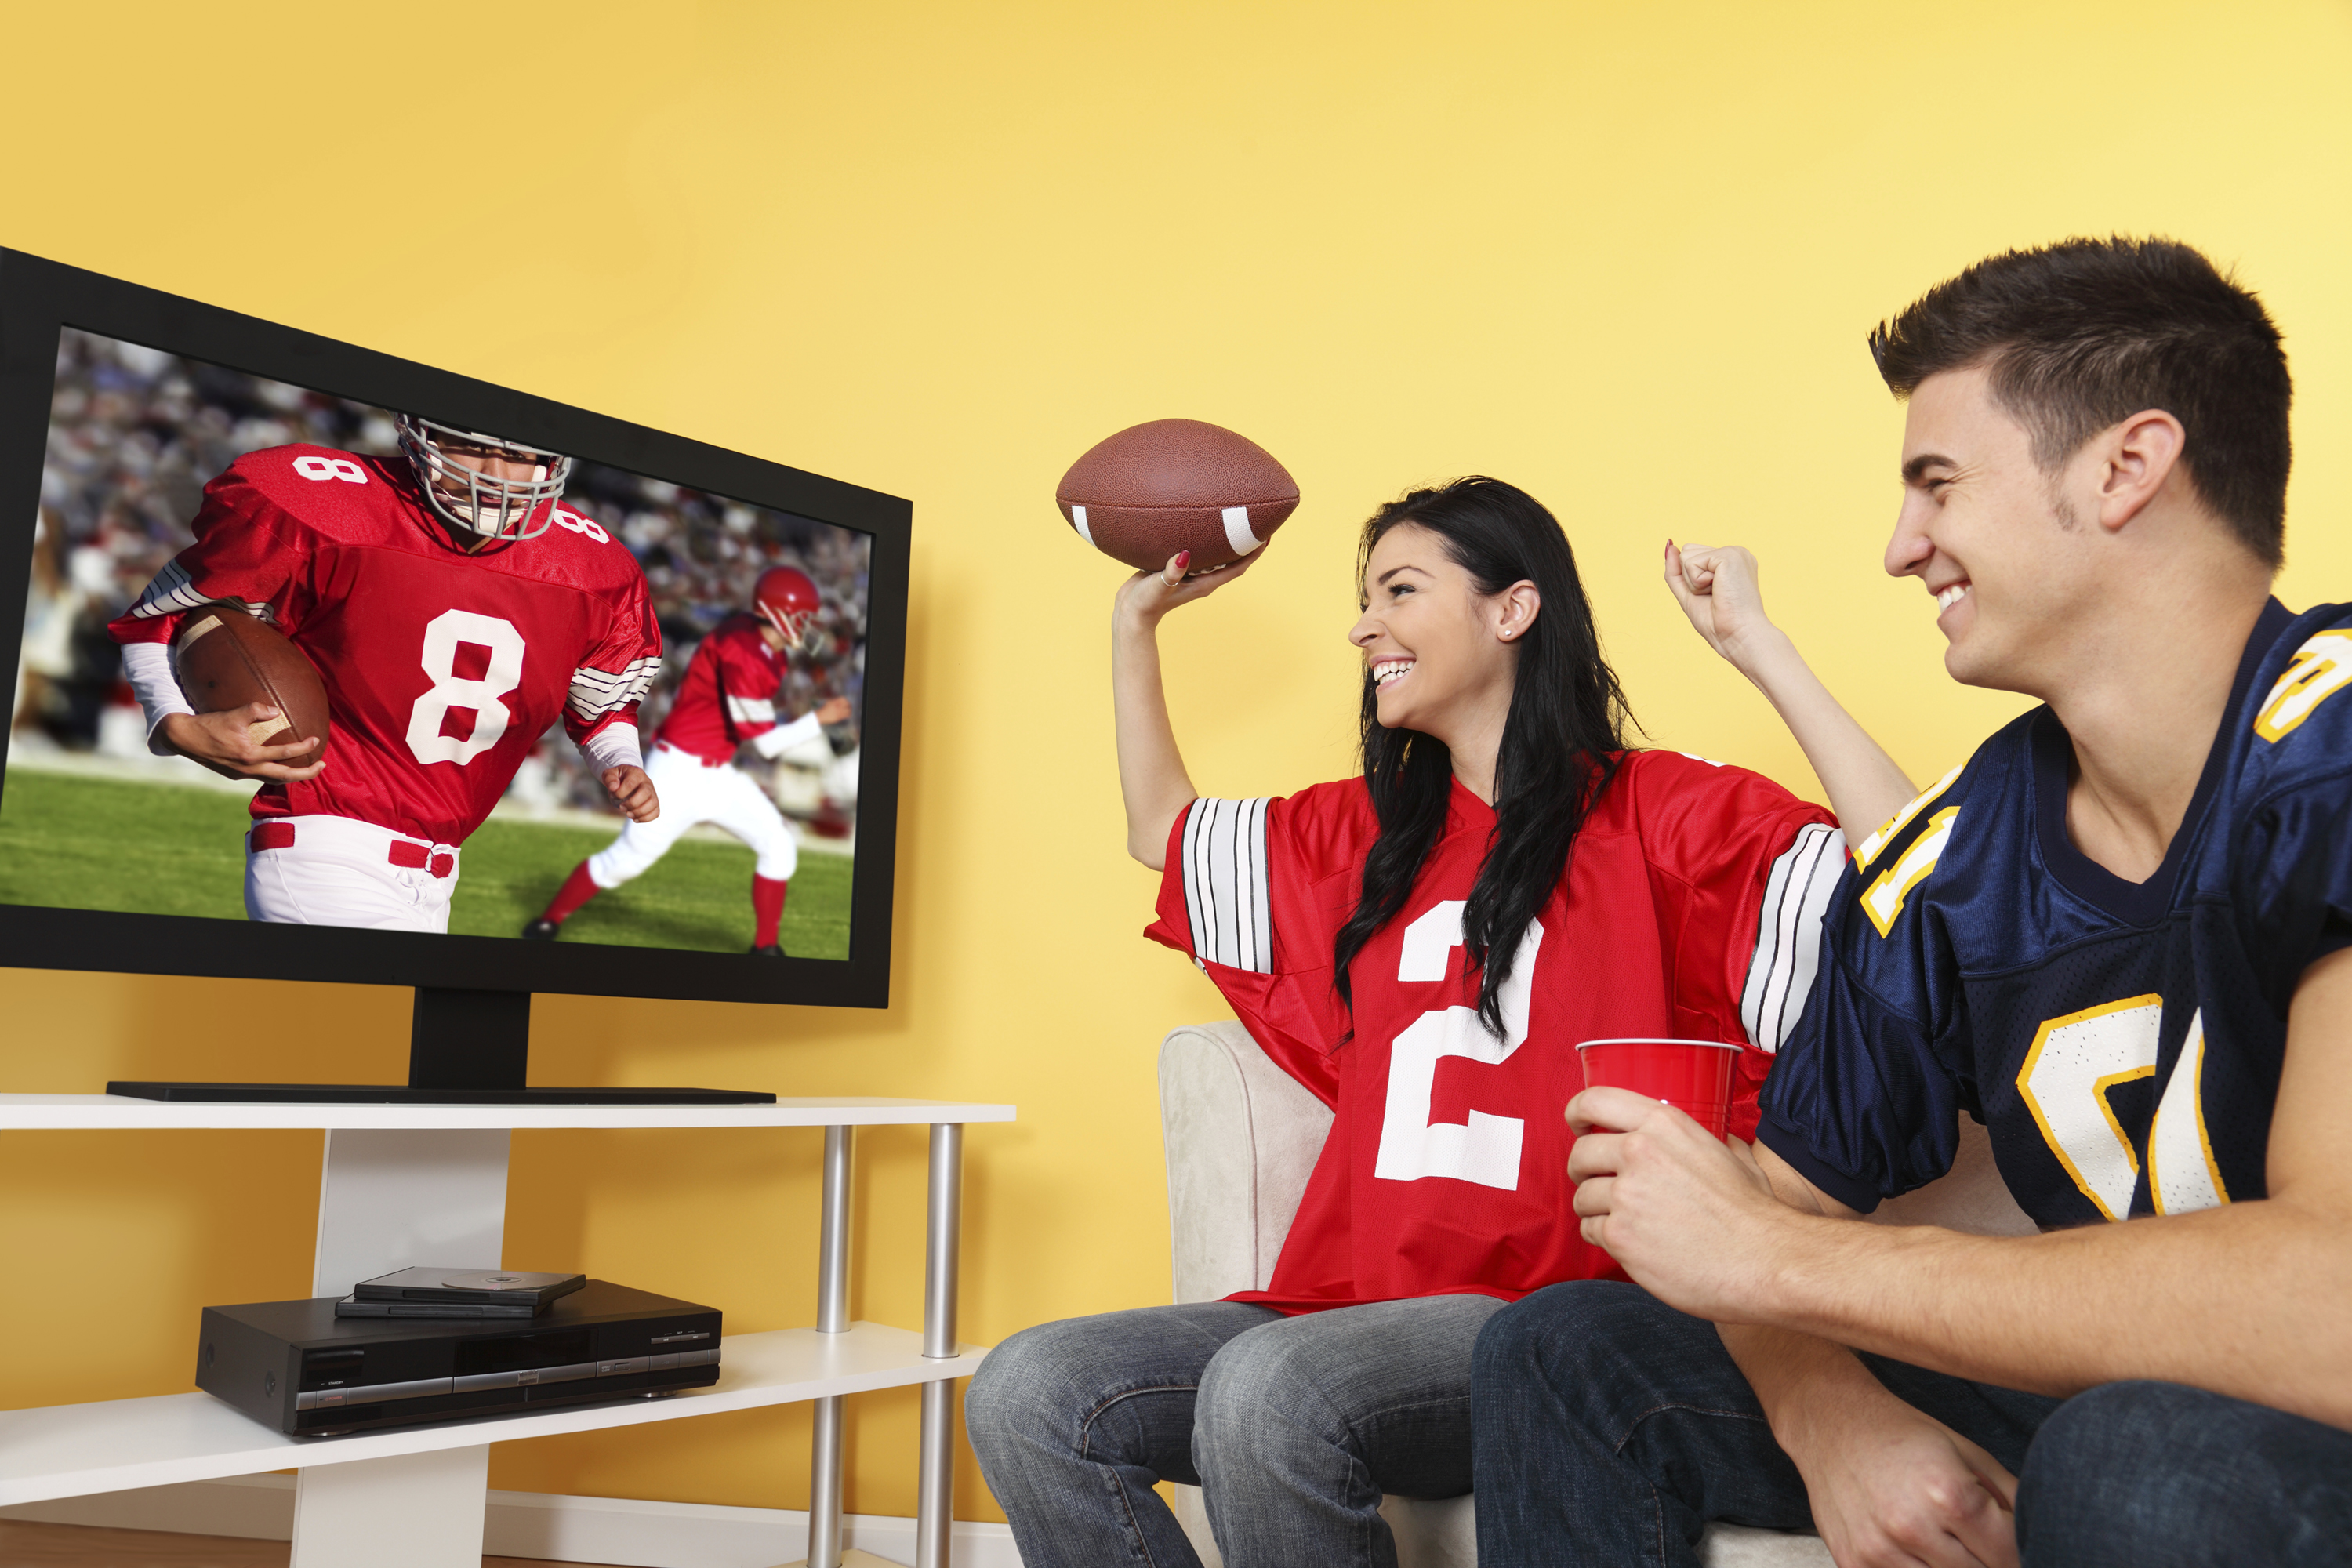 football watching nfl tv sports games today screen game fans sponsors istock night tailgate uconn couples flat affect returns tvs